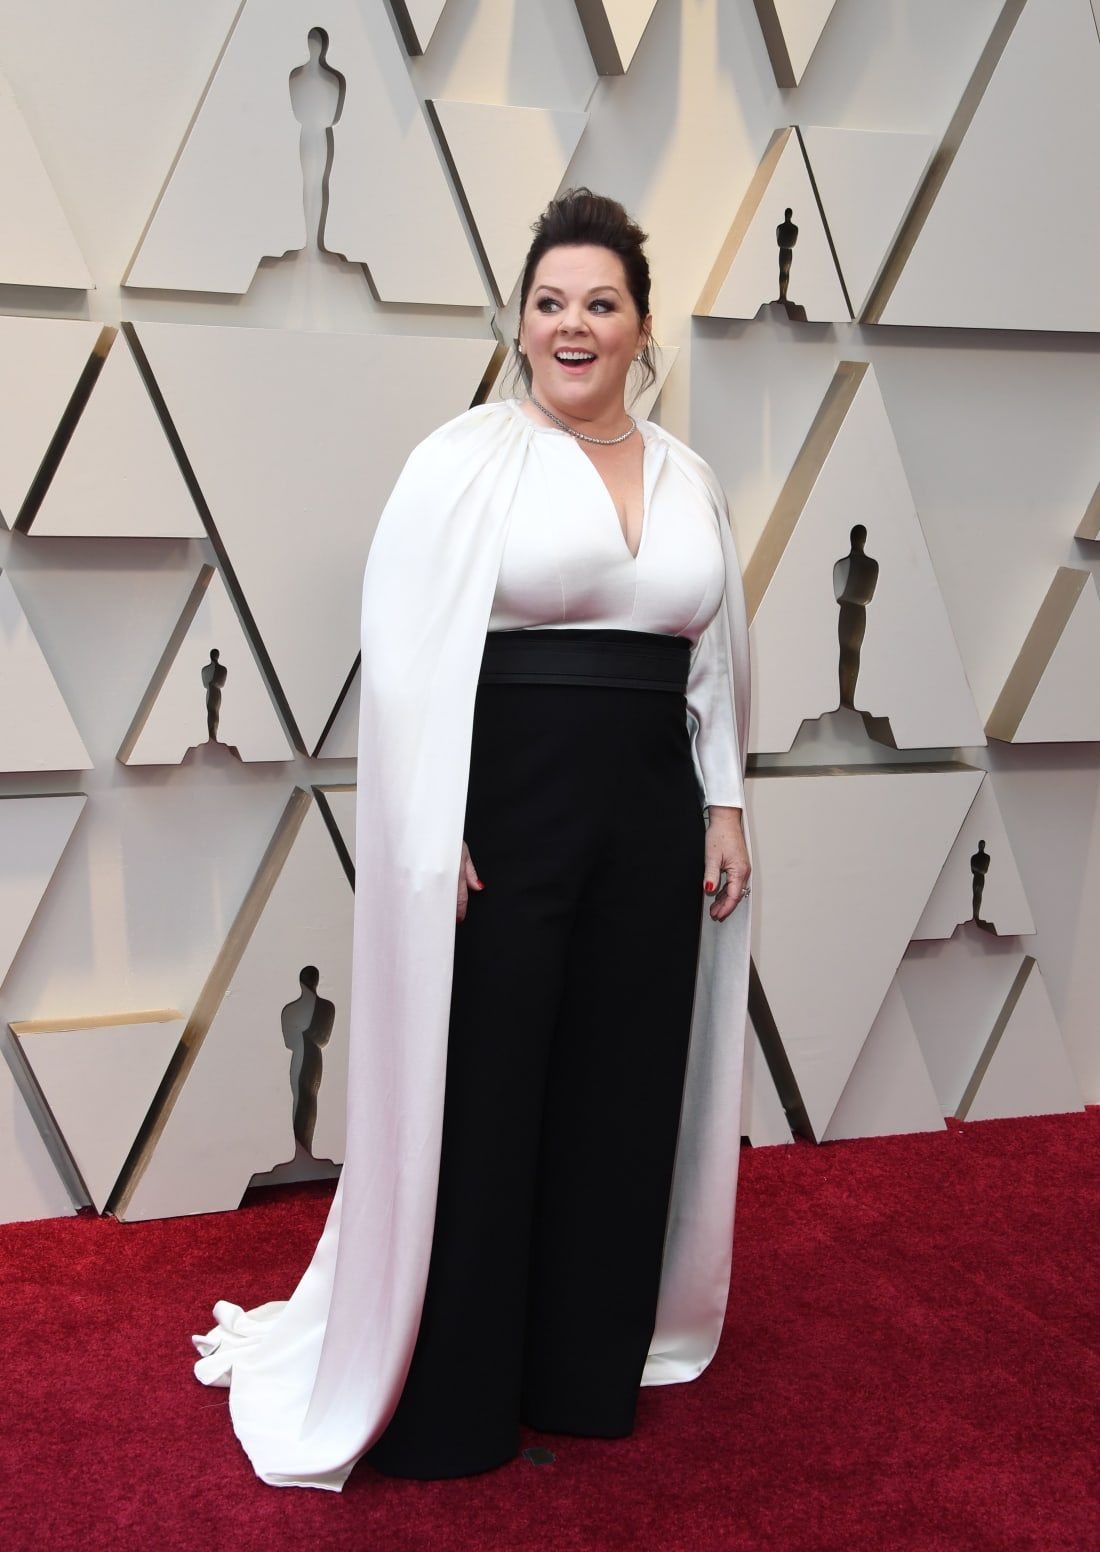 jinza-bridal-oscar-2019-melissa-mccarthy-pantsuits-with-cape.jpg